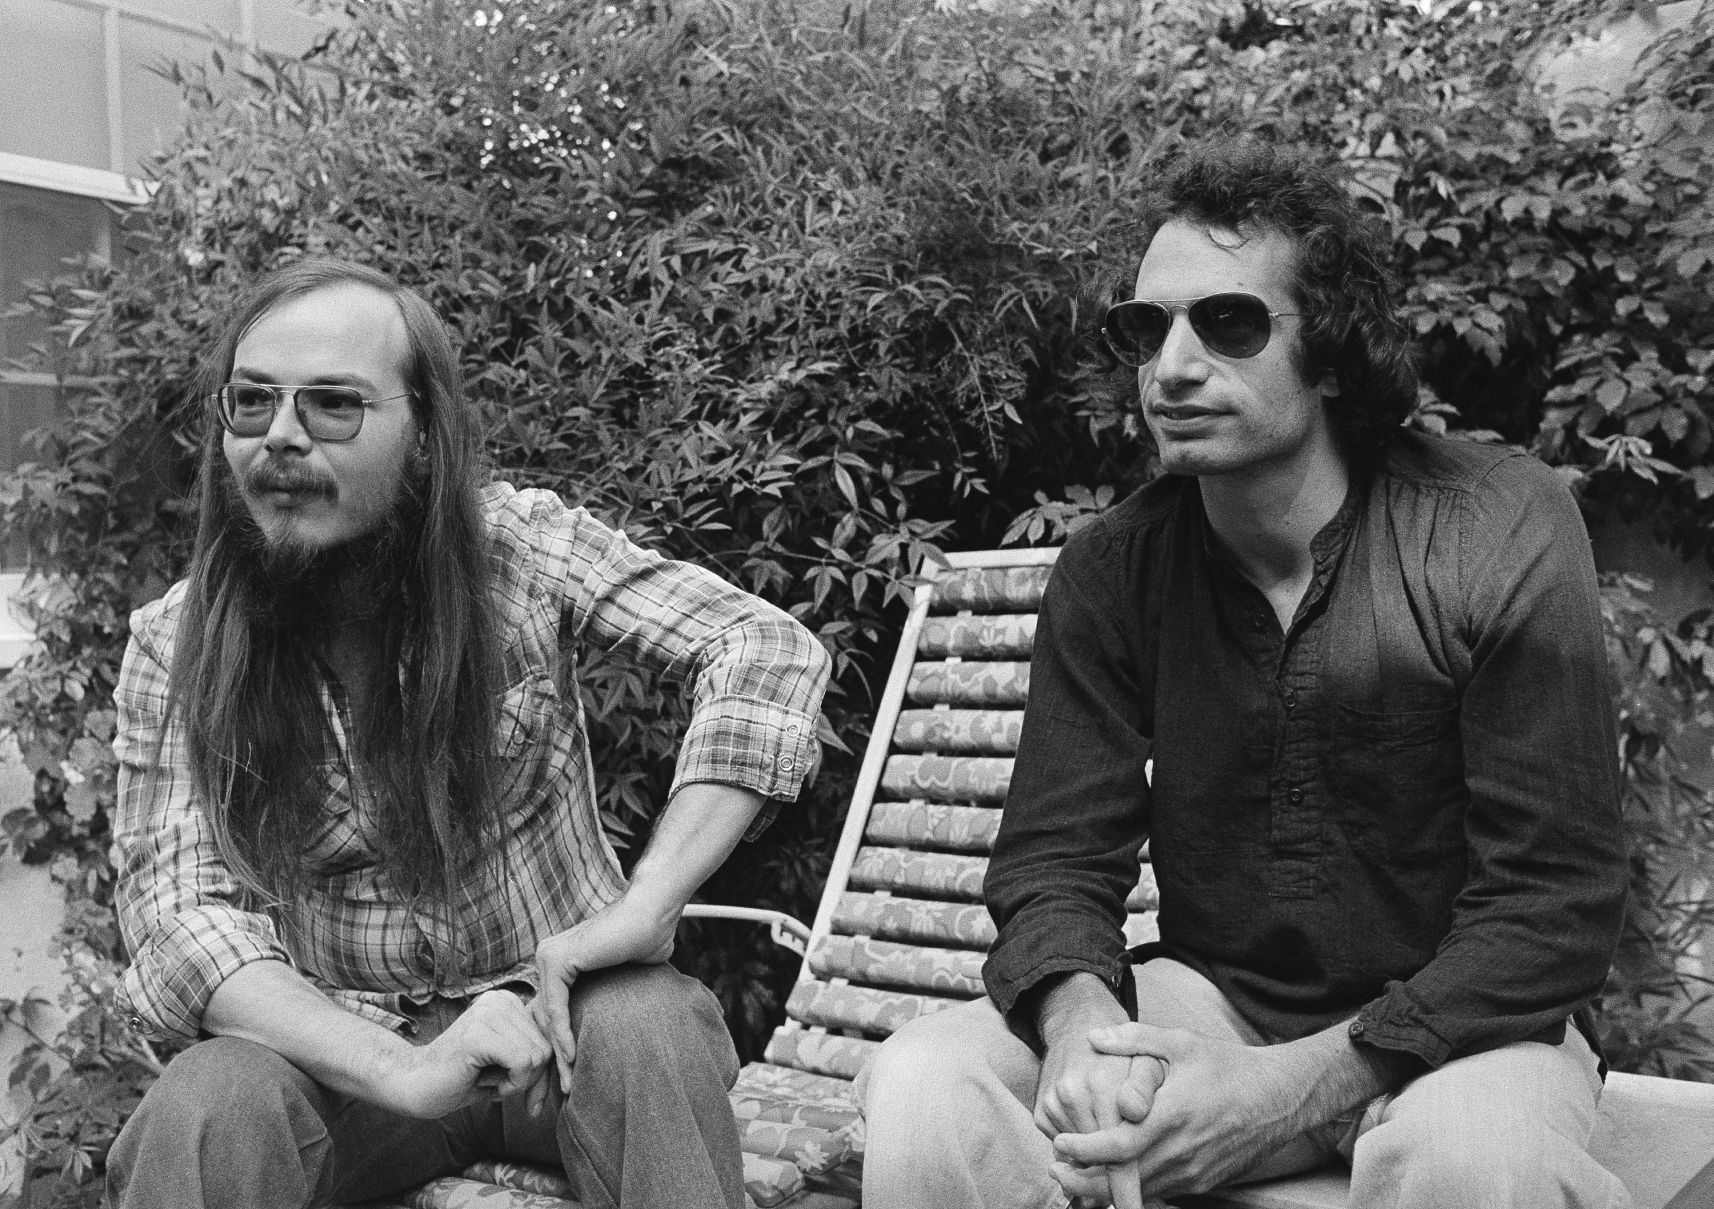 Steely Dan co-founder Walter Becker dies aged 67